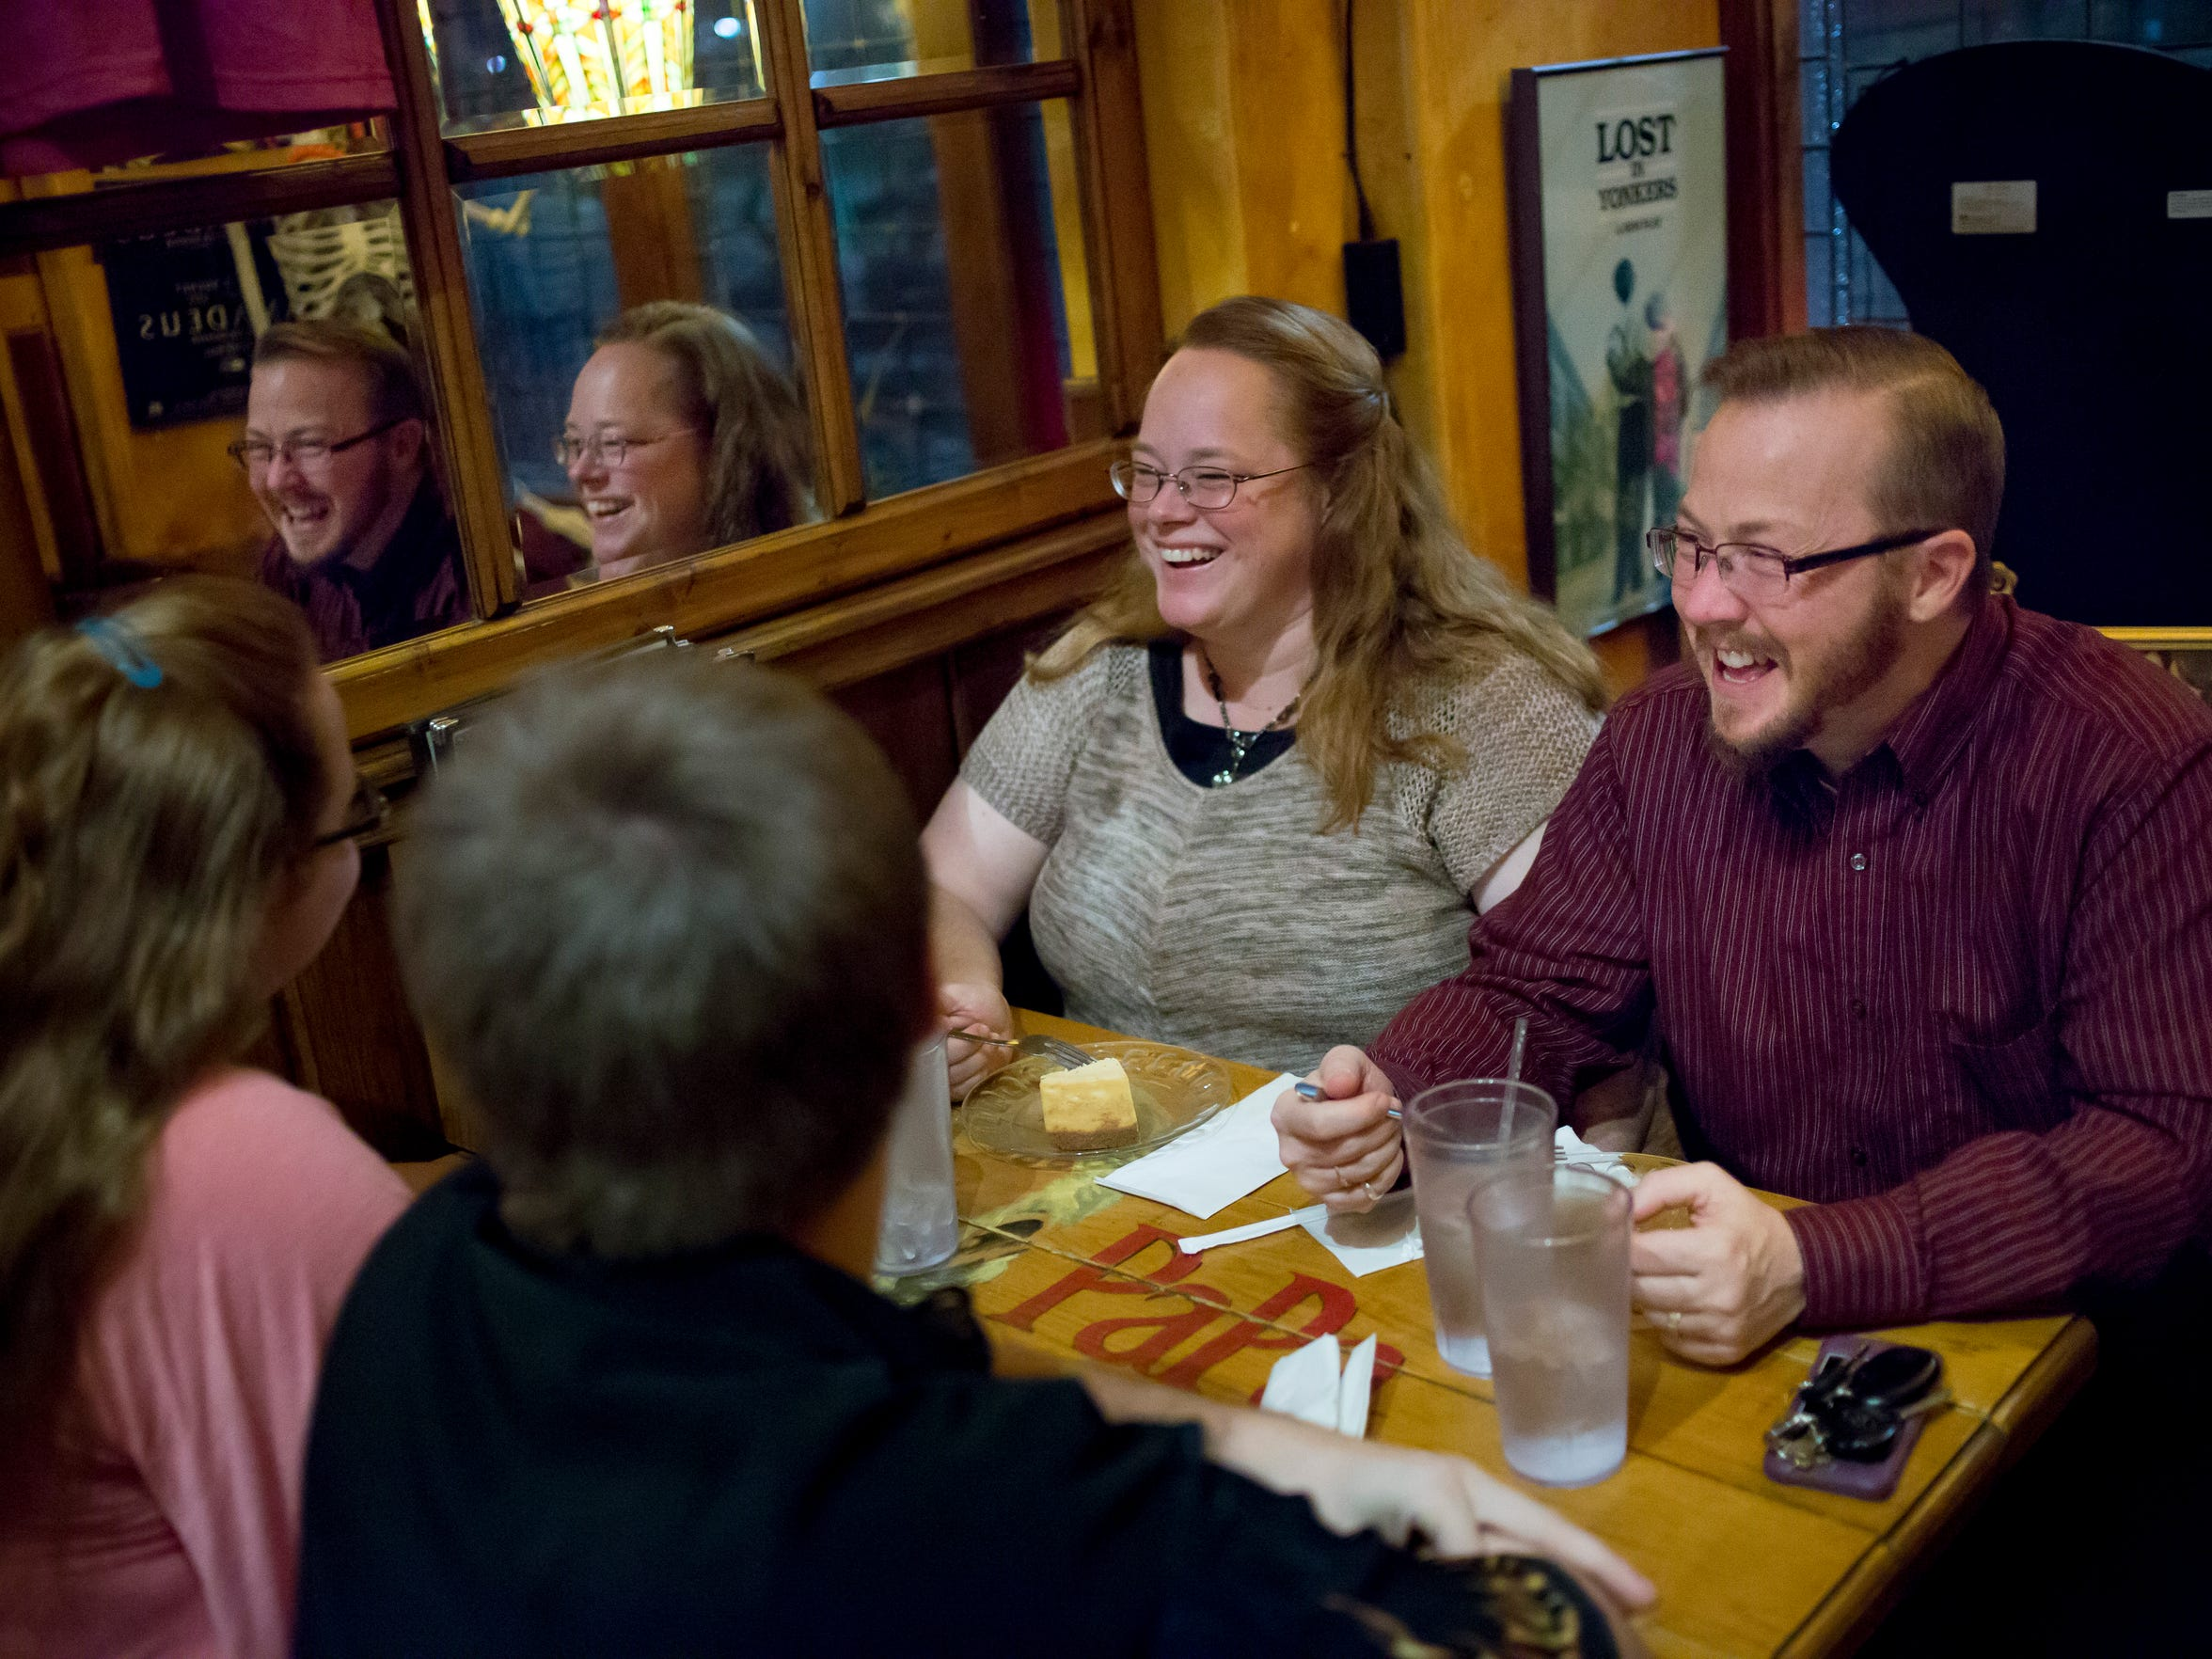 Seth Carwyn laughs along with his wife, Christine Carwyn, while they have dinner with their children, Peter Forsgren, 21, and Cathy Forsgren, 19, Thursday, Oct. 13, 2016 at The Raven in downtown Port Huron.